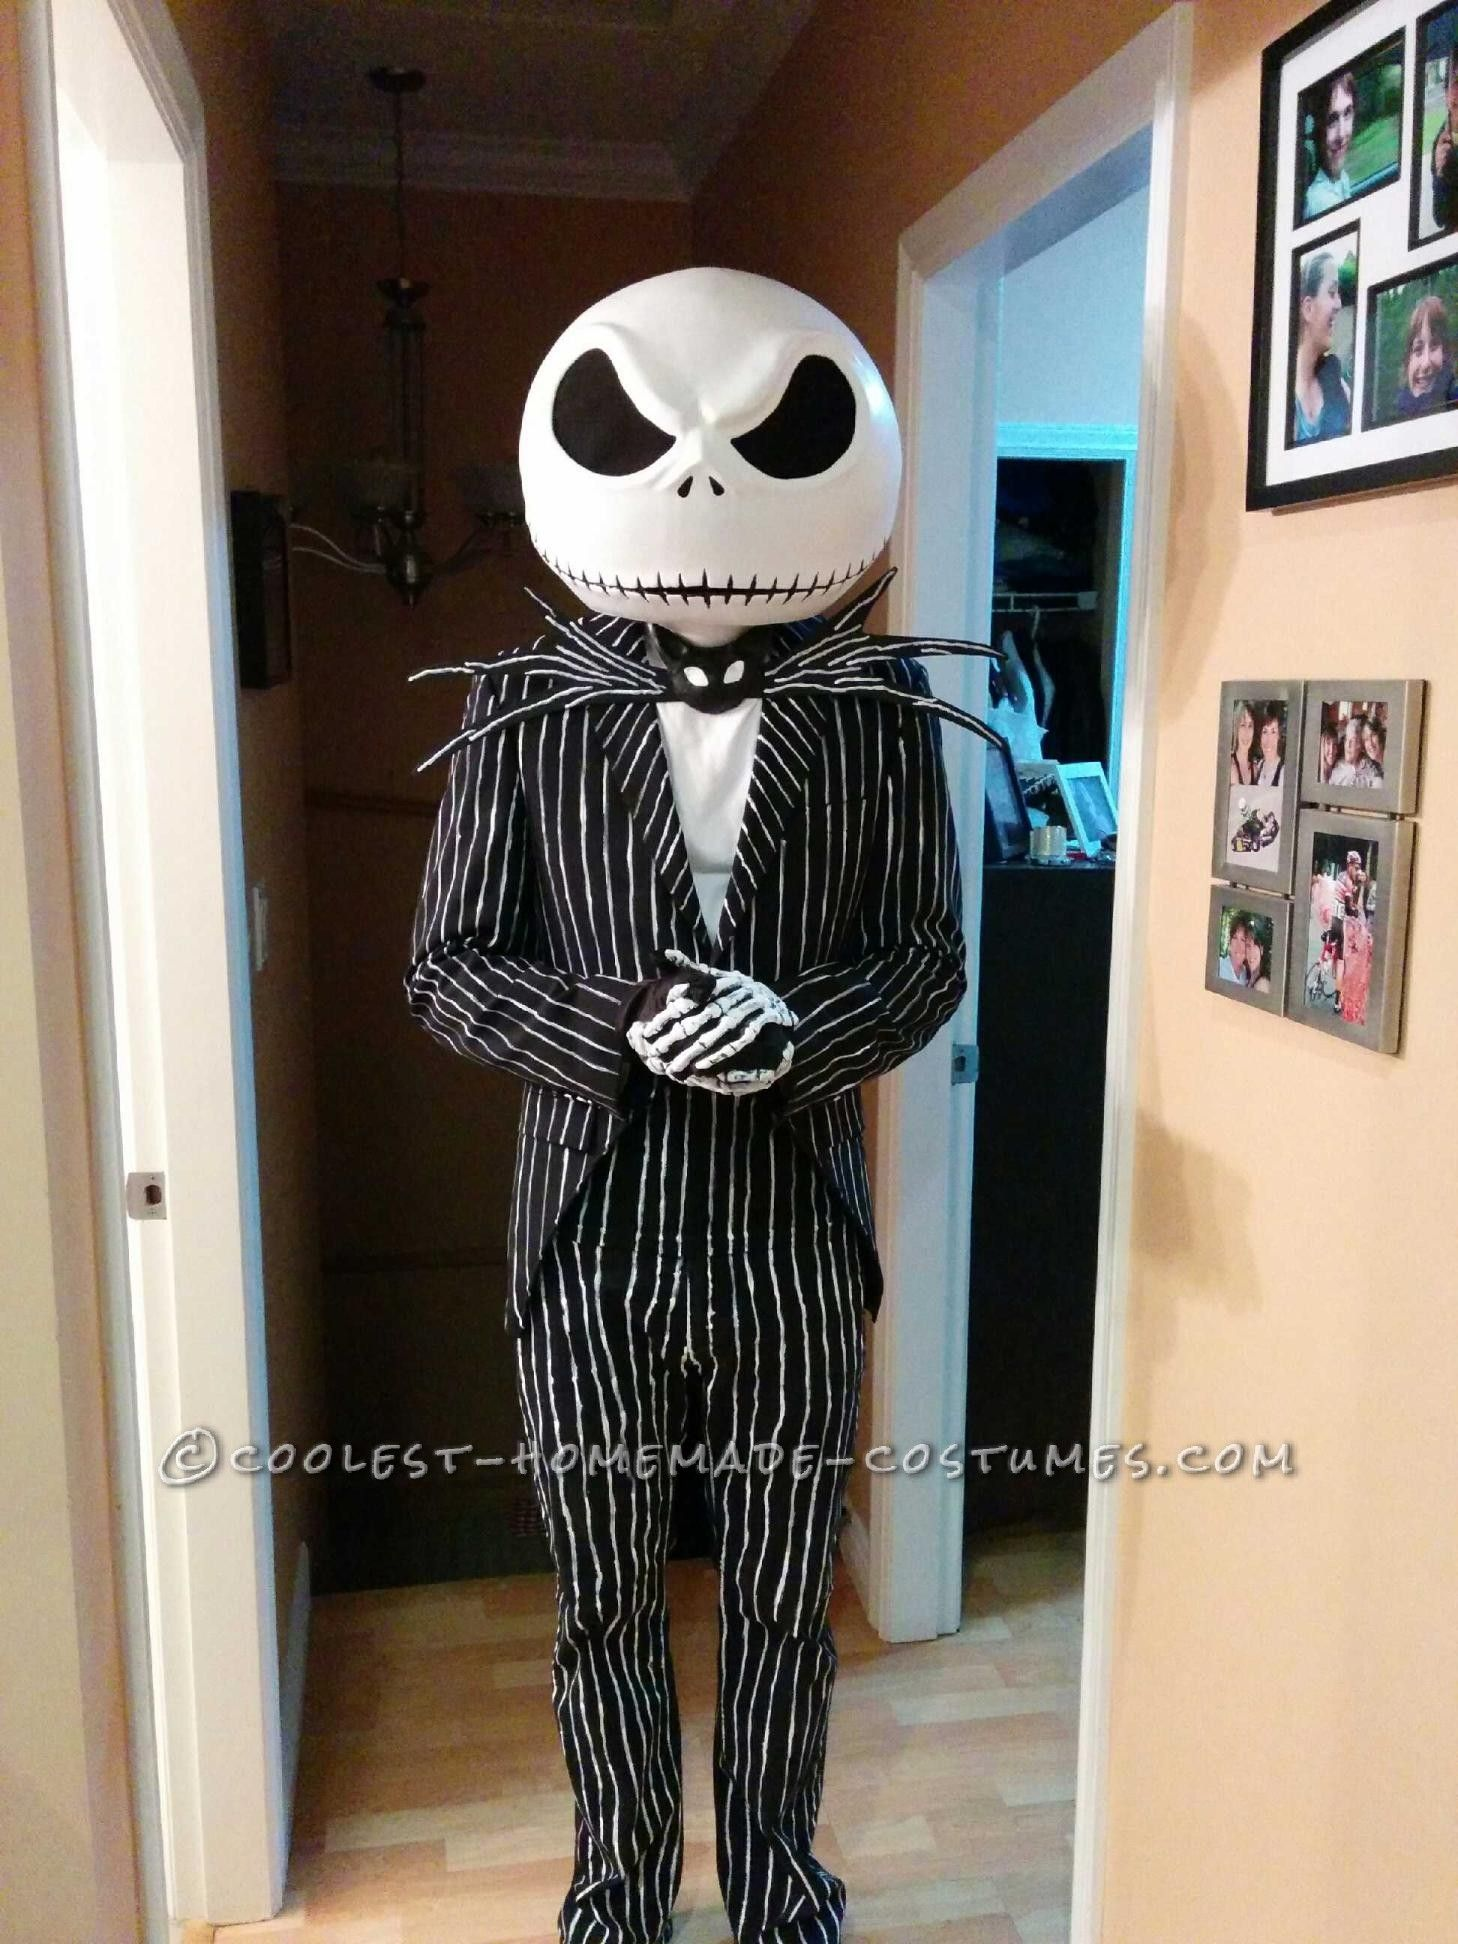 ffbaa52fc0 amazing jack skellington nightmare before christmas costume coolest  halloween costume contest